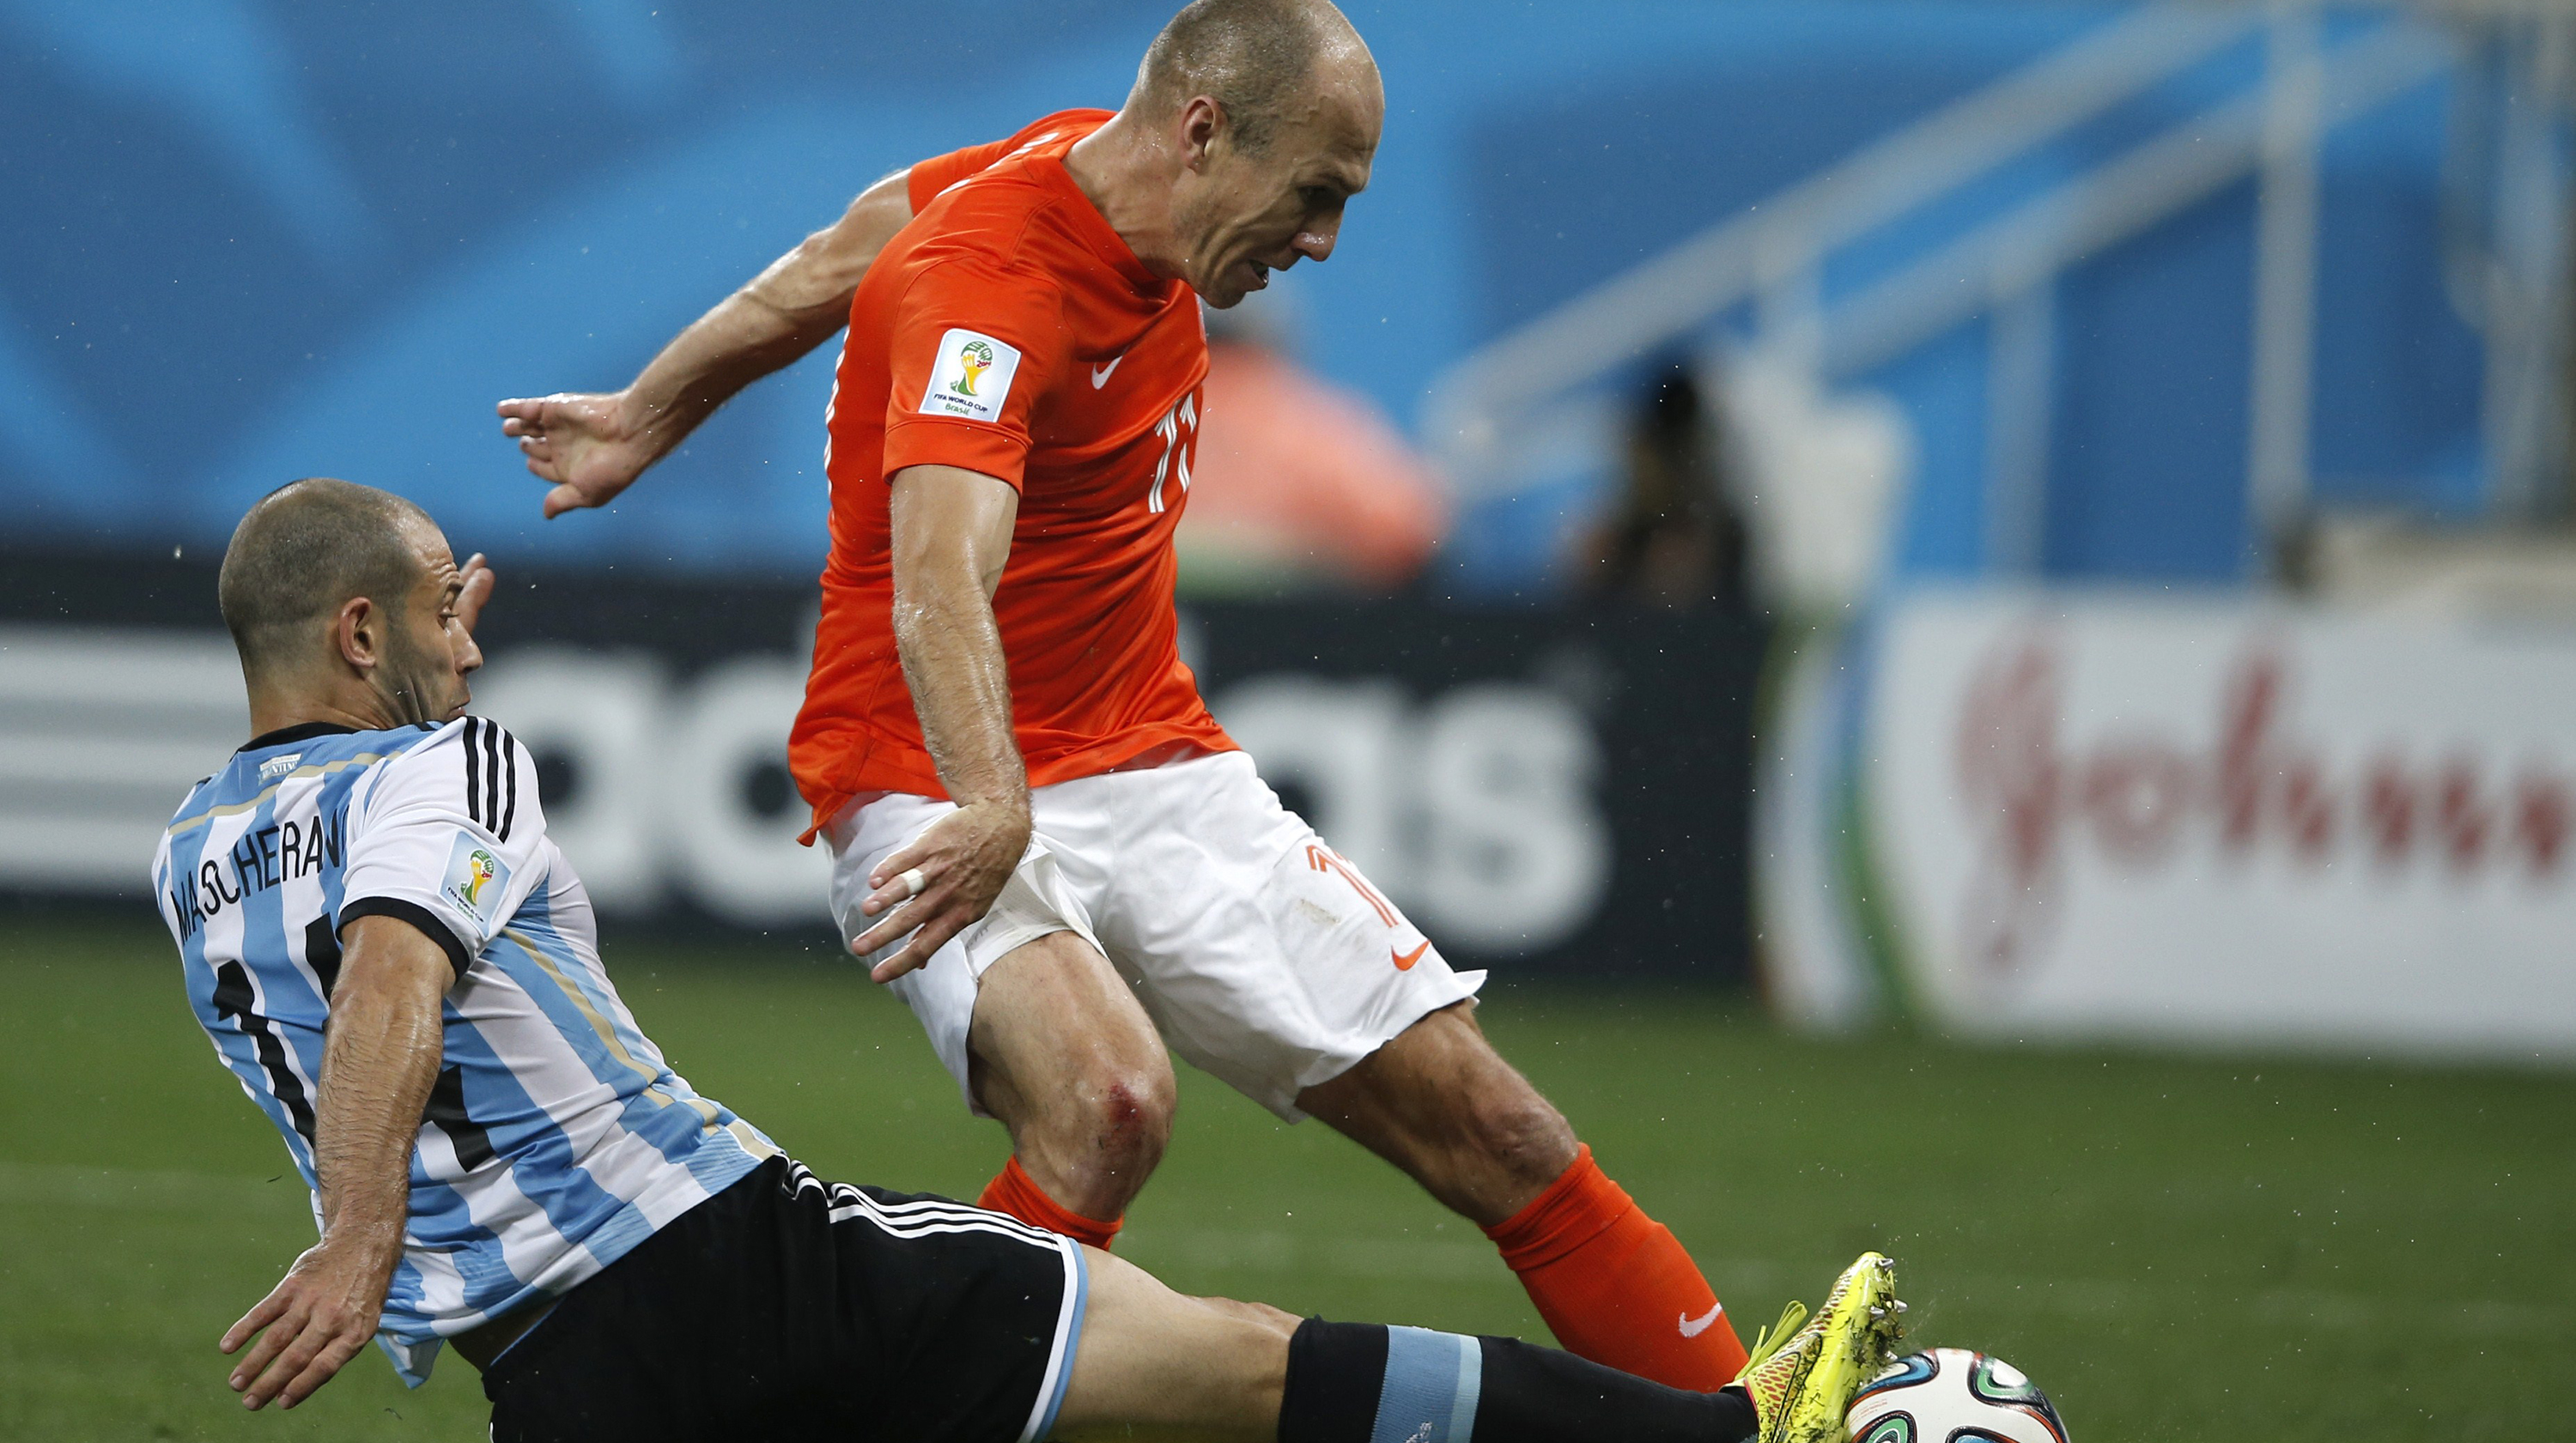 Argentina's midfielder Javier Mascherano (L) vies with Netherlands' forward Arjen Robben (R) during the semi-final football match between Netherlands and Argentina of the FIFA World Cup at The Corinthians Arena in Sao Paulo on July 9, 2014.